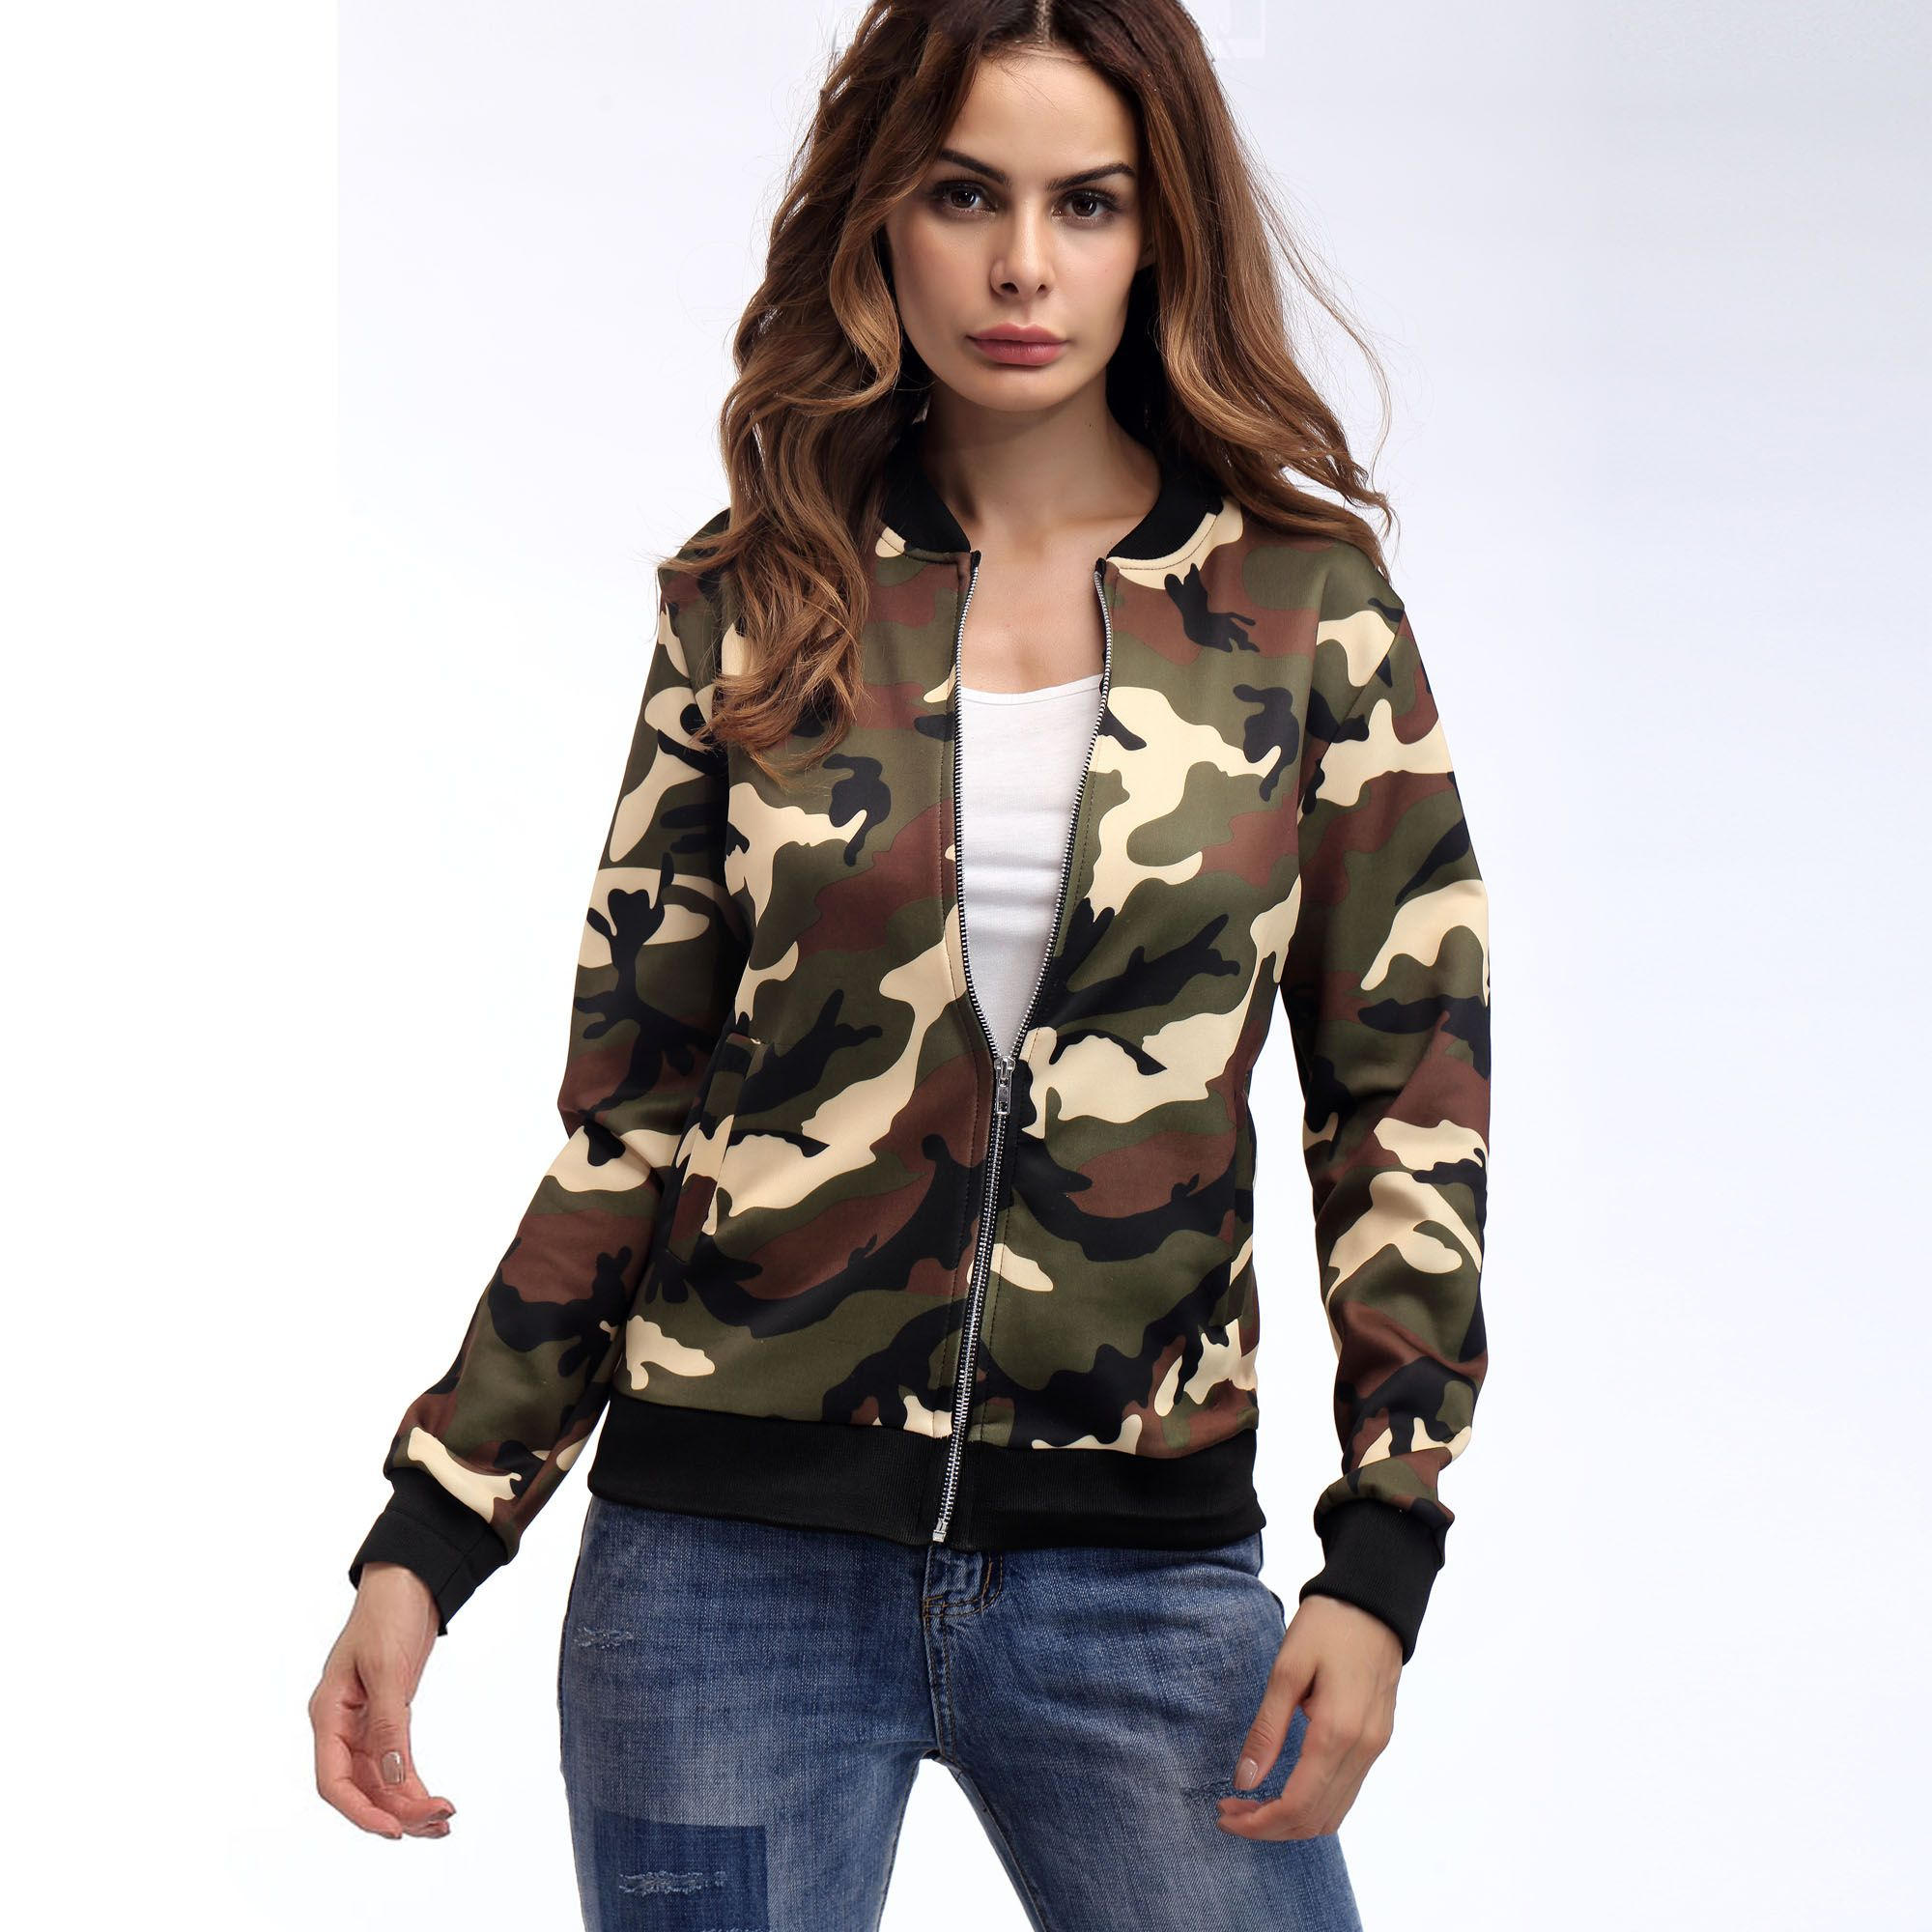 Womenus camouflage jacket tops pinterest camouflage